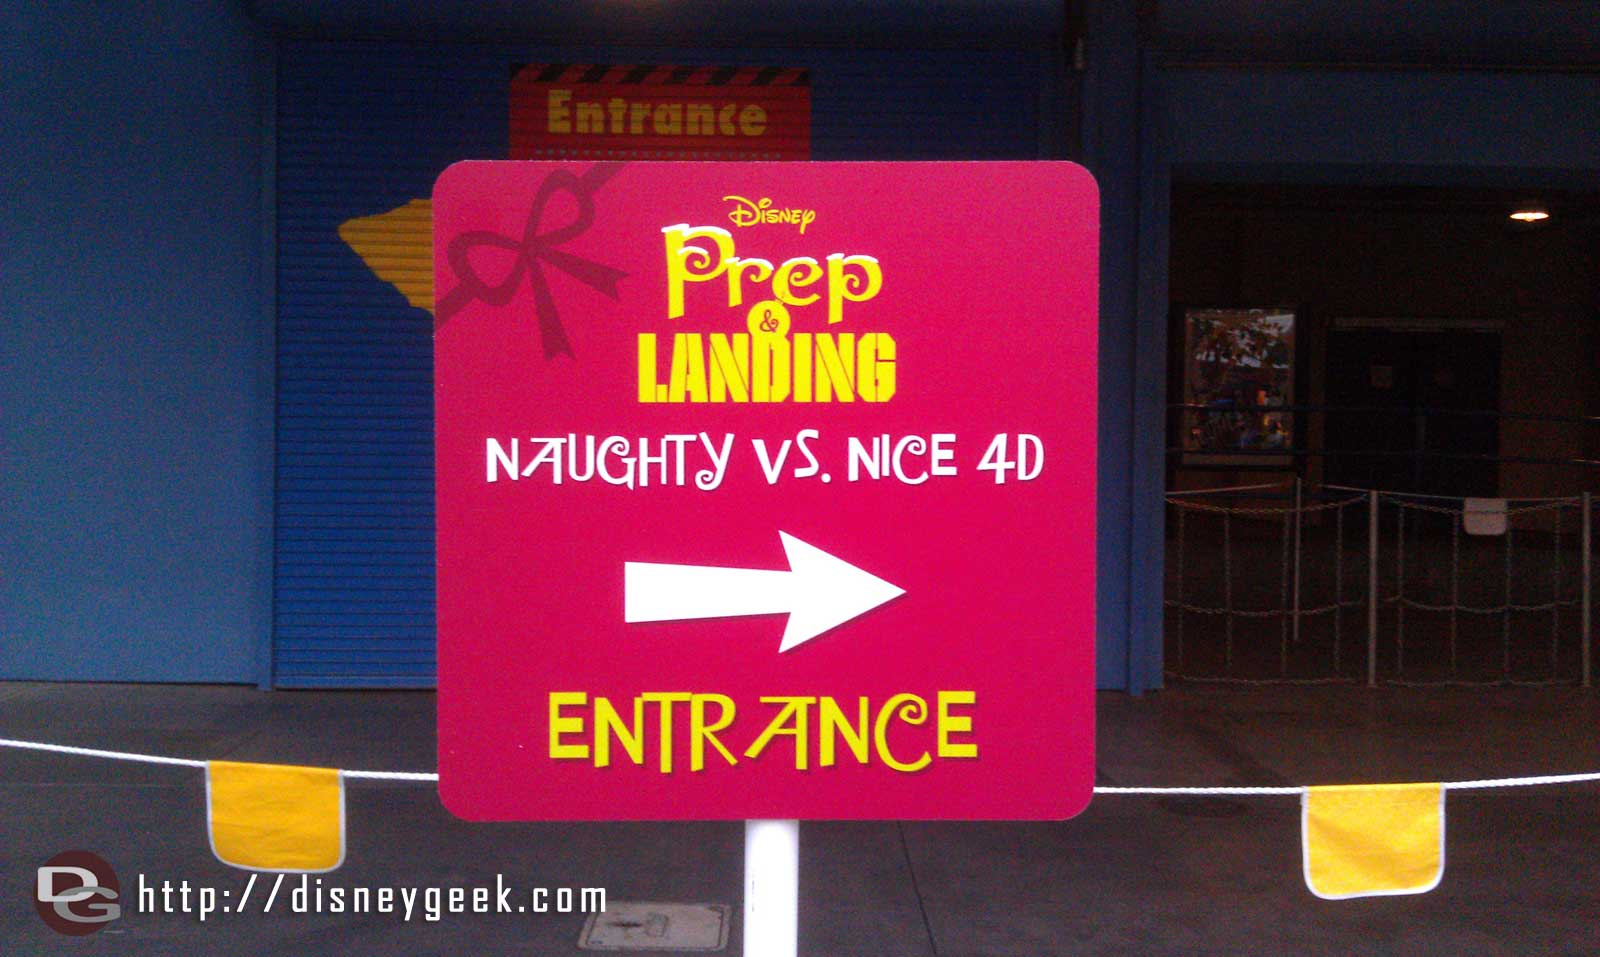 Prep & Landing Naughty vs Nice 4D is now playing in the Muppet theater.